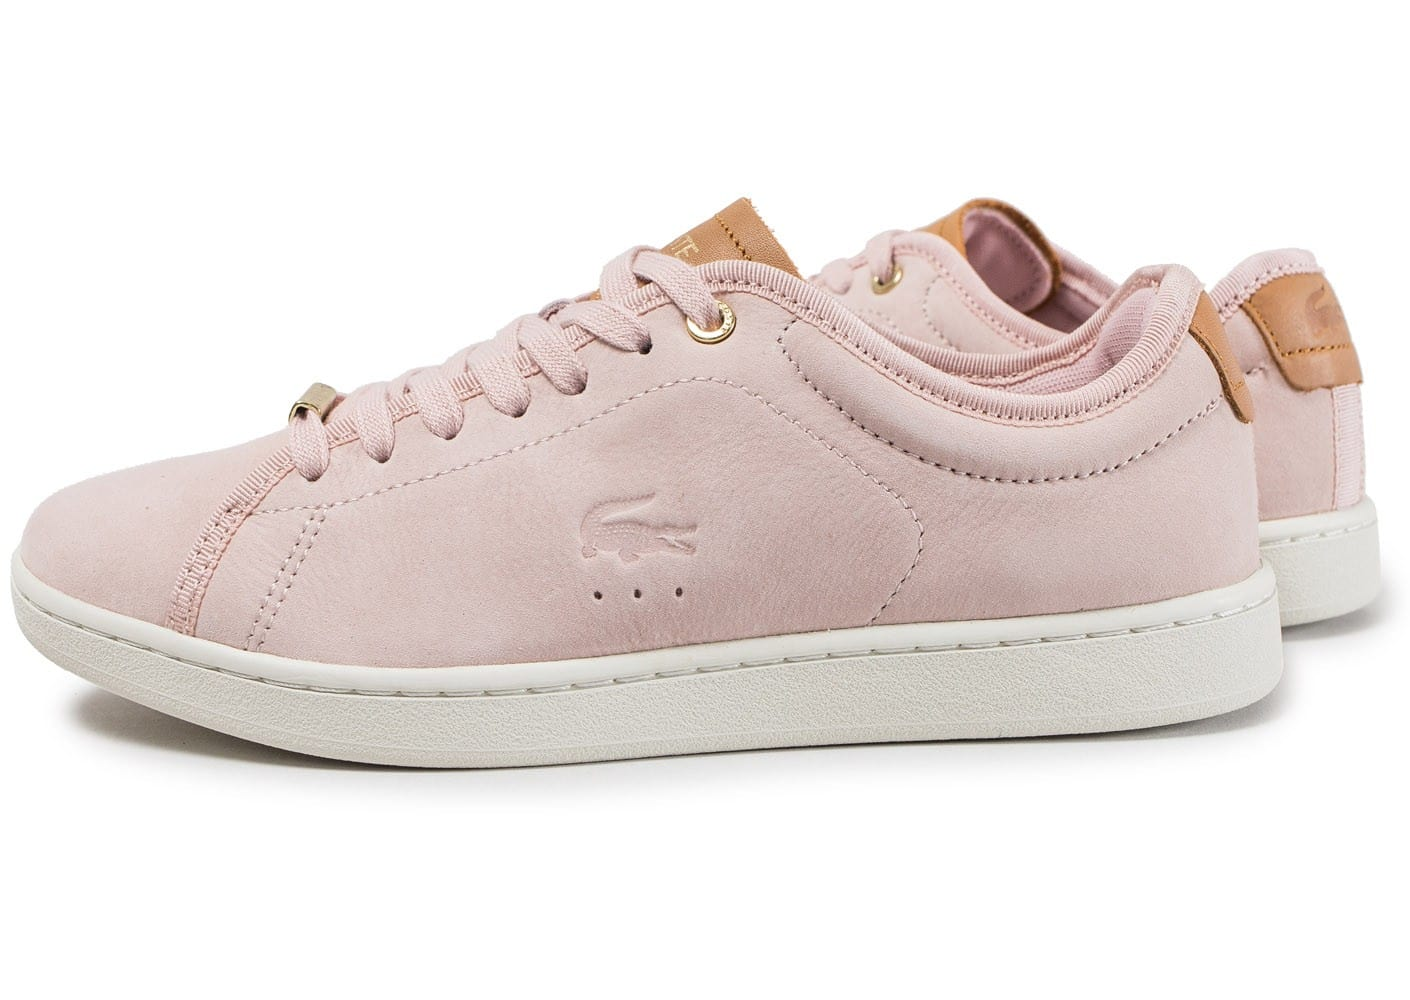 Chaussures Lacoste Carnaby apq3f